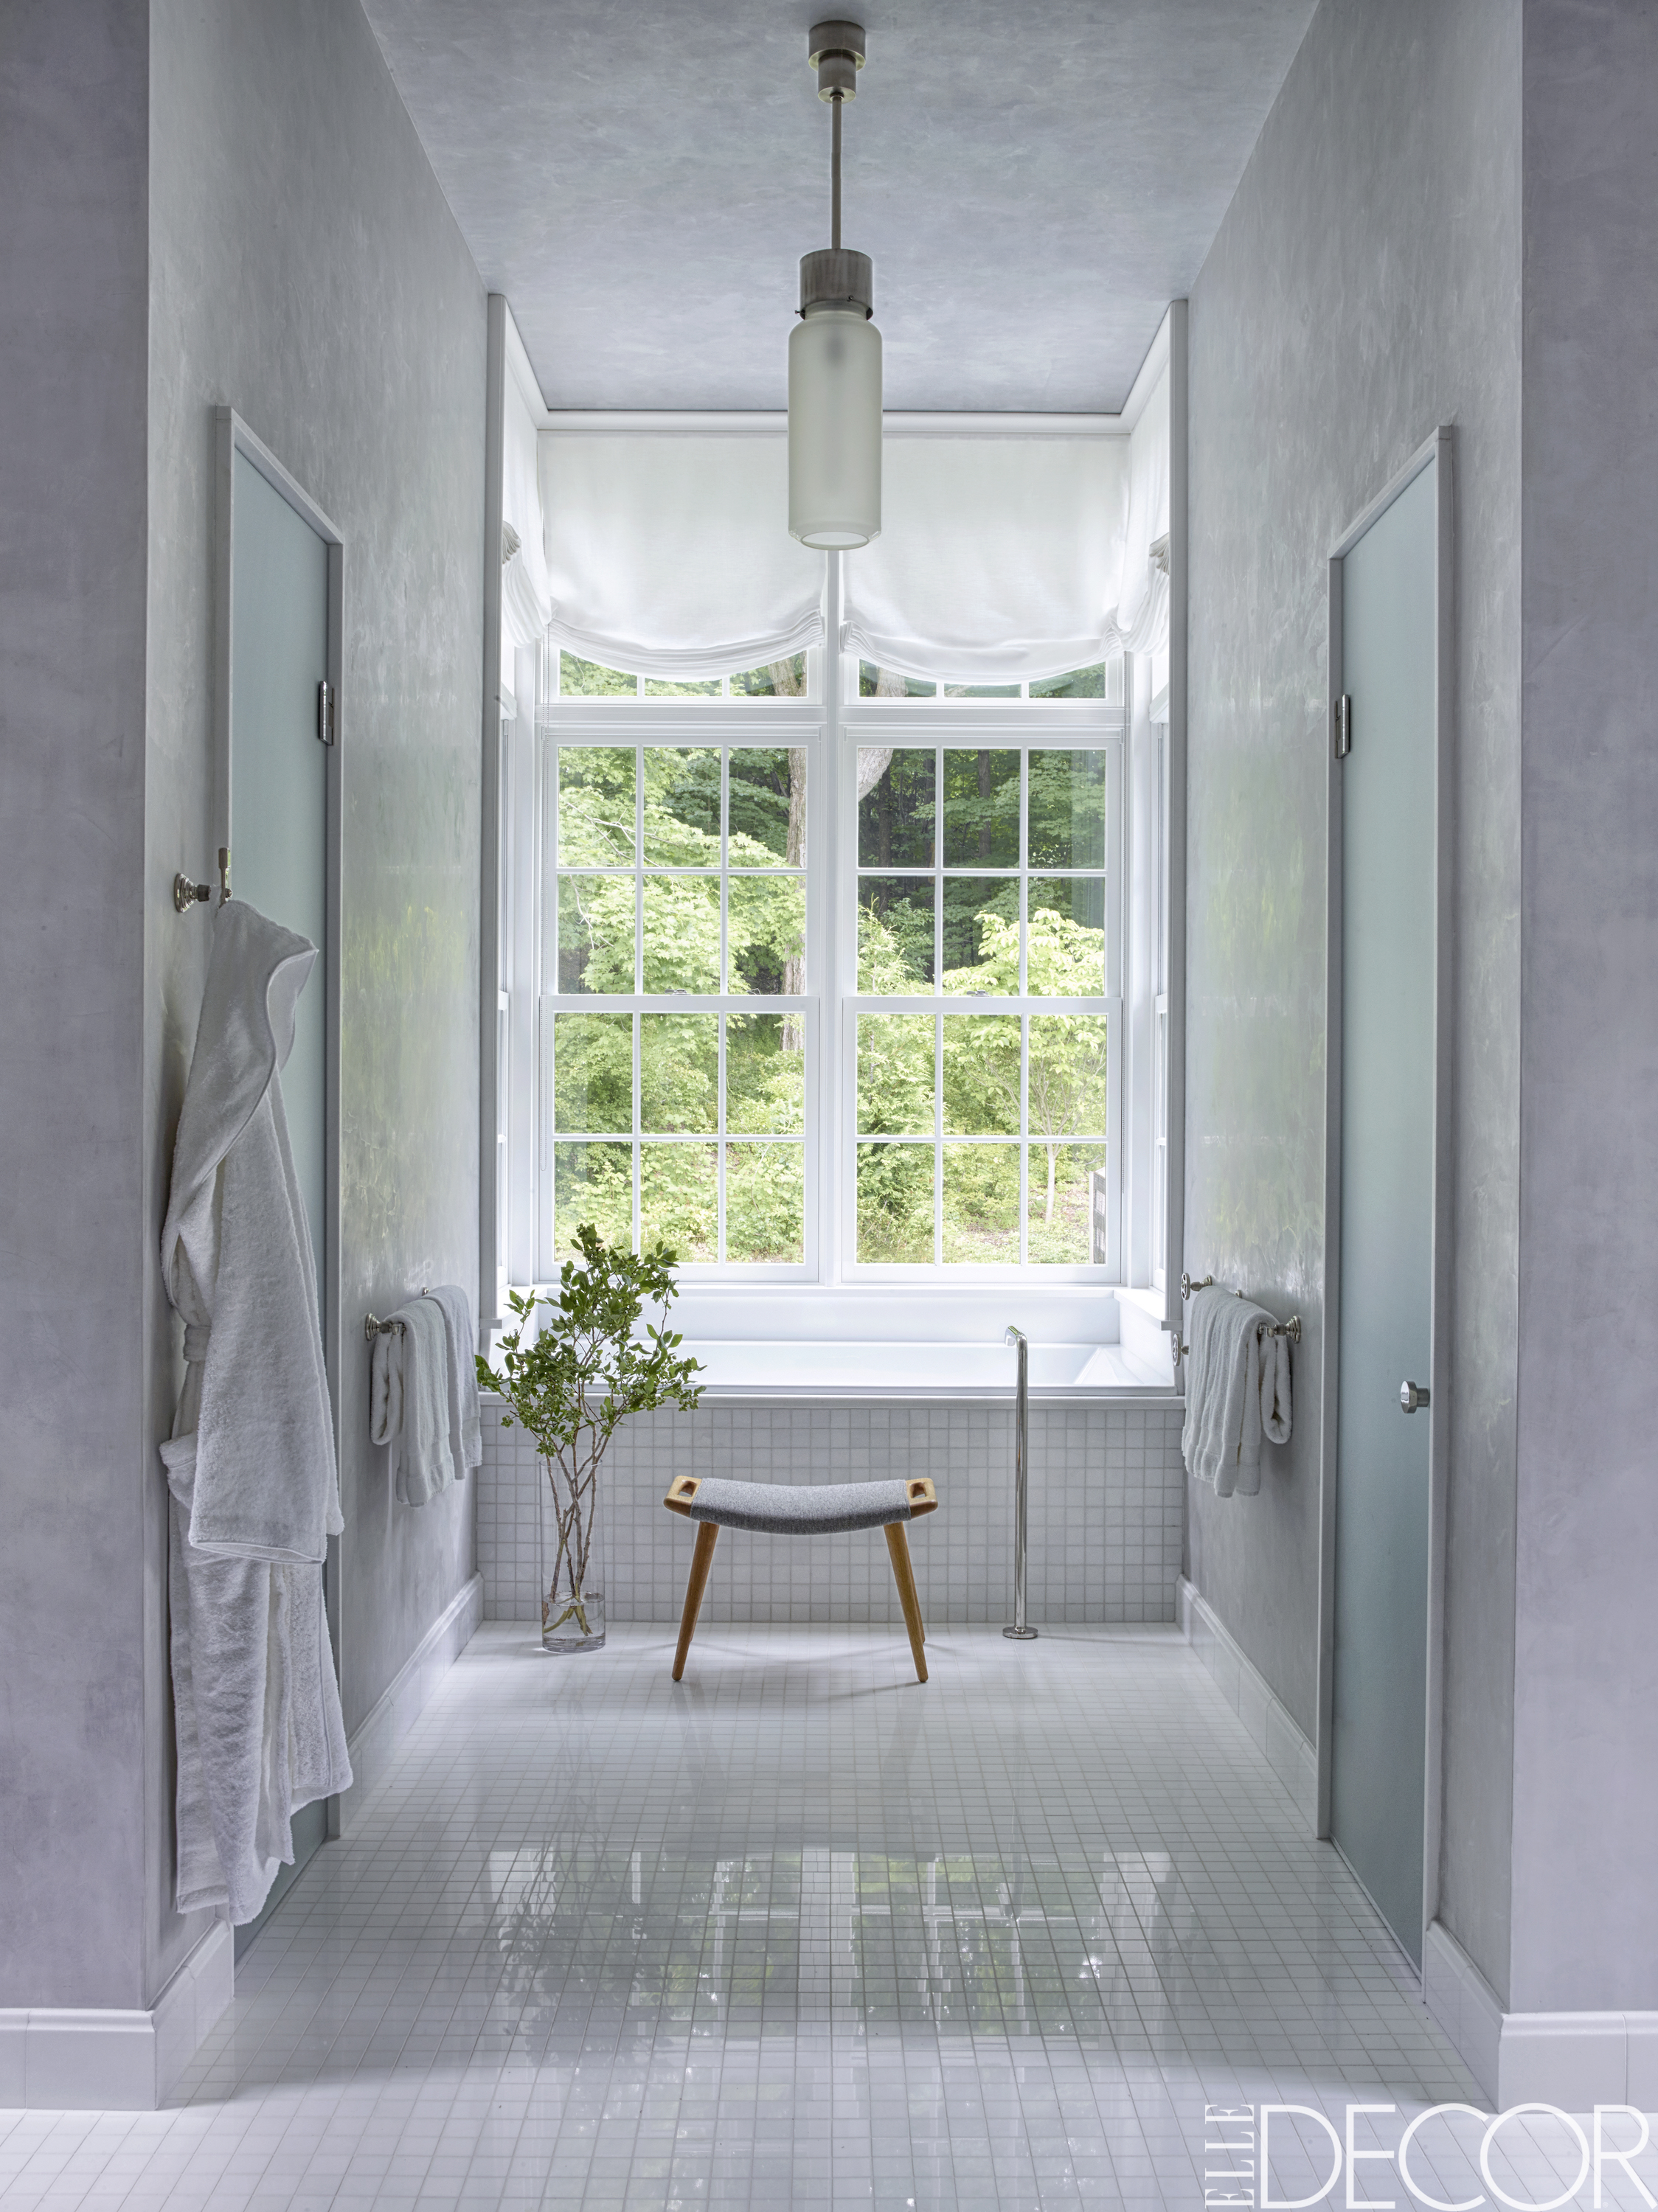 25 white bathroom design ideas decorating tips for all - White bathroom ideas photo gallery ...